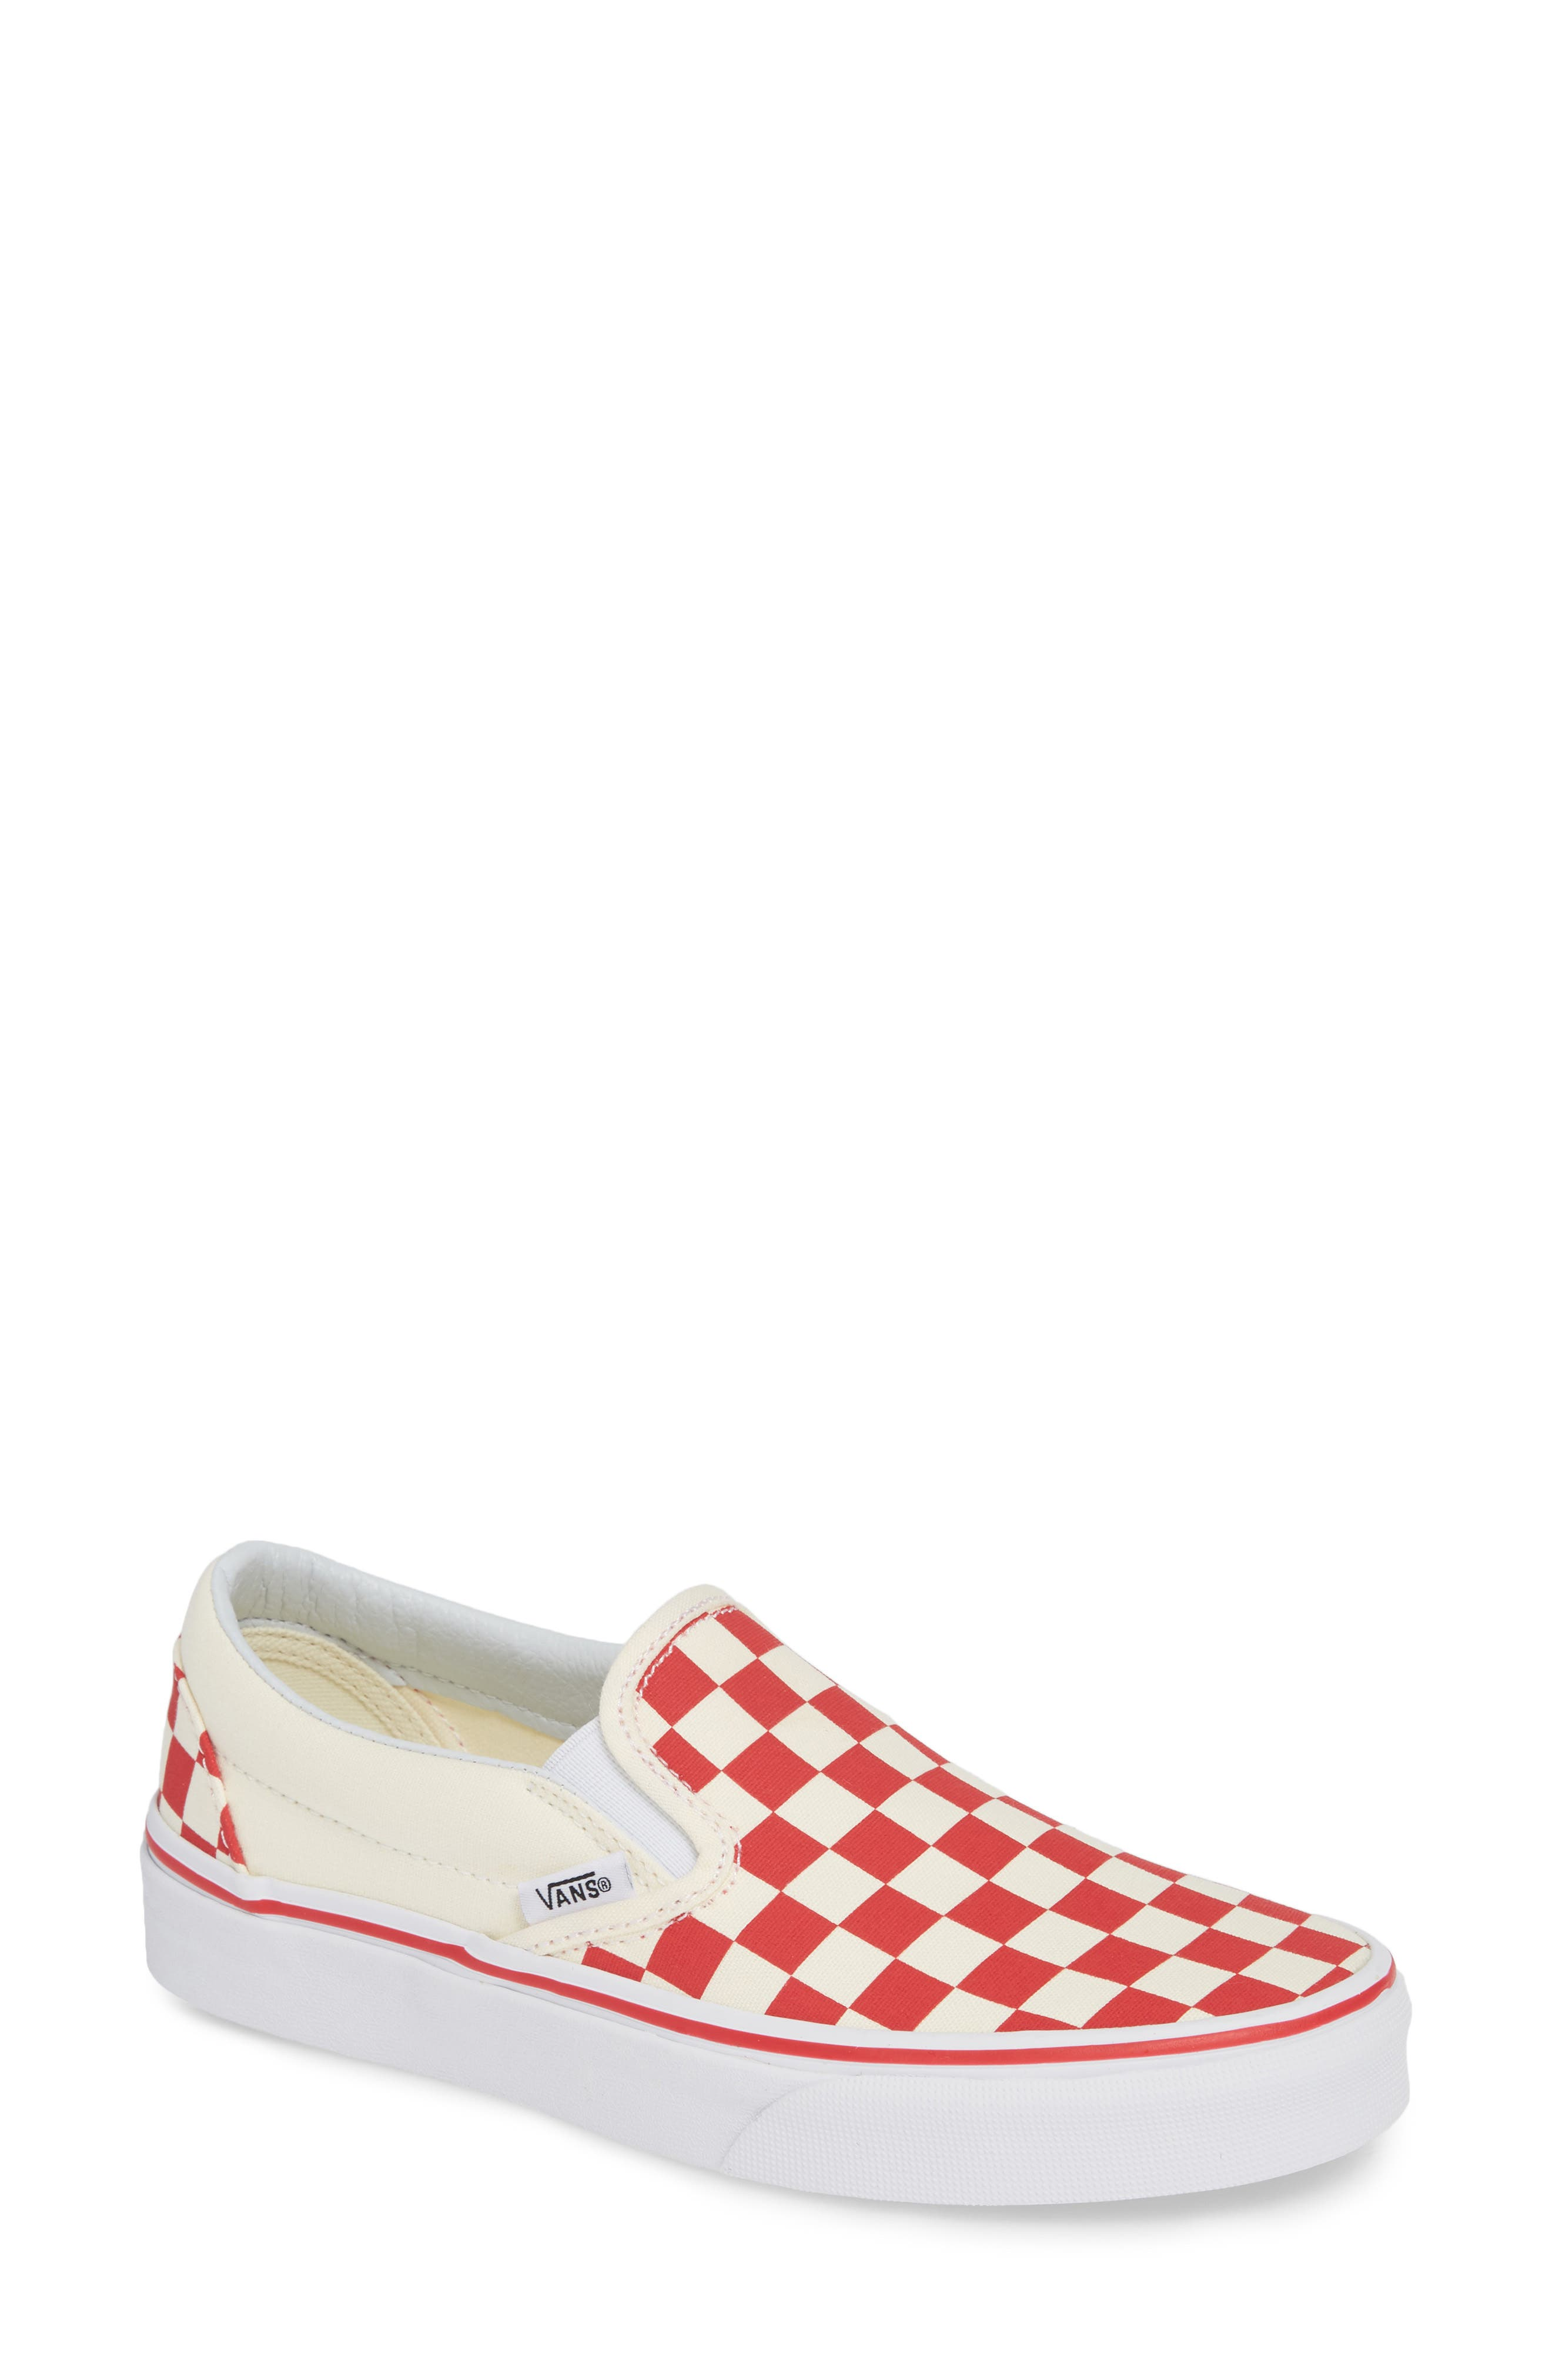 'Classic' Slip-On,                             Main thumbnail 1, color,                             RACING RED/ WHITE